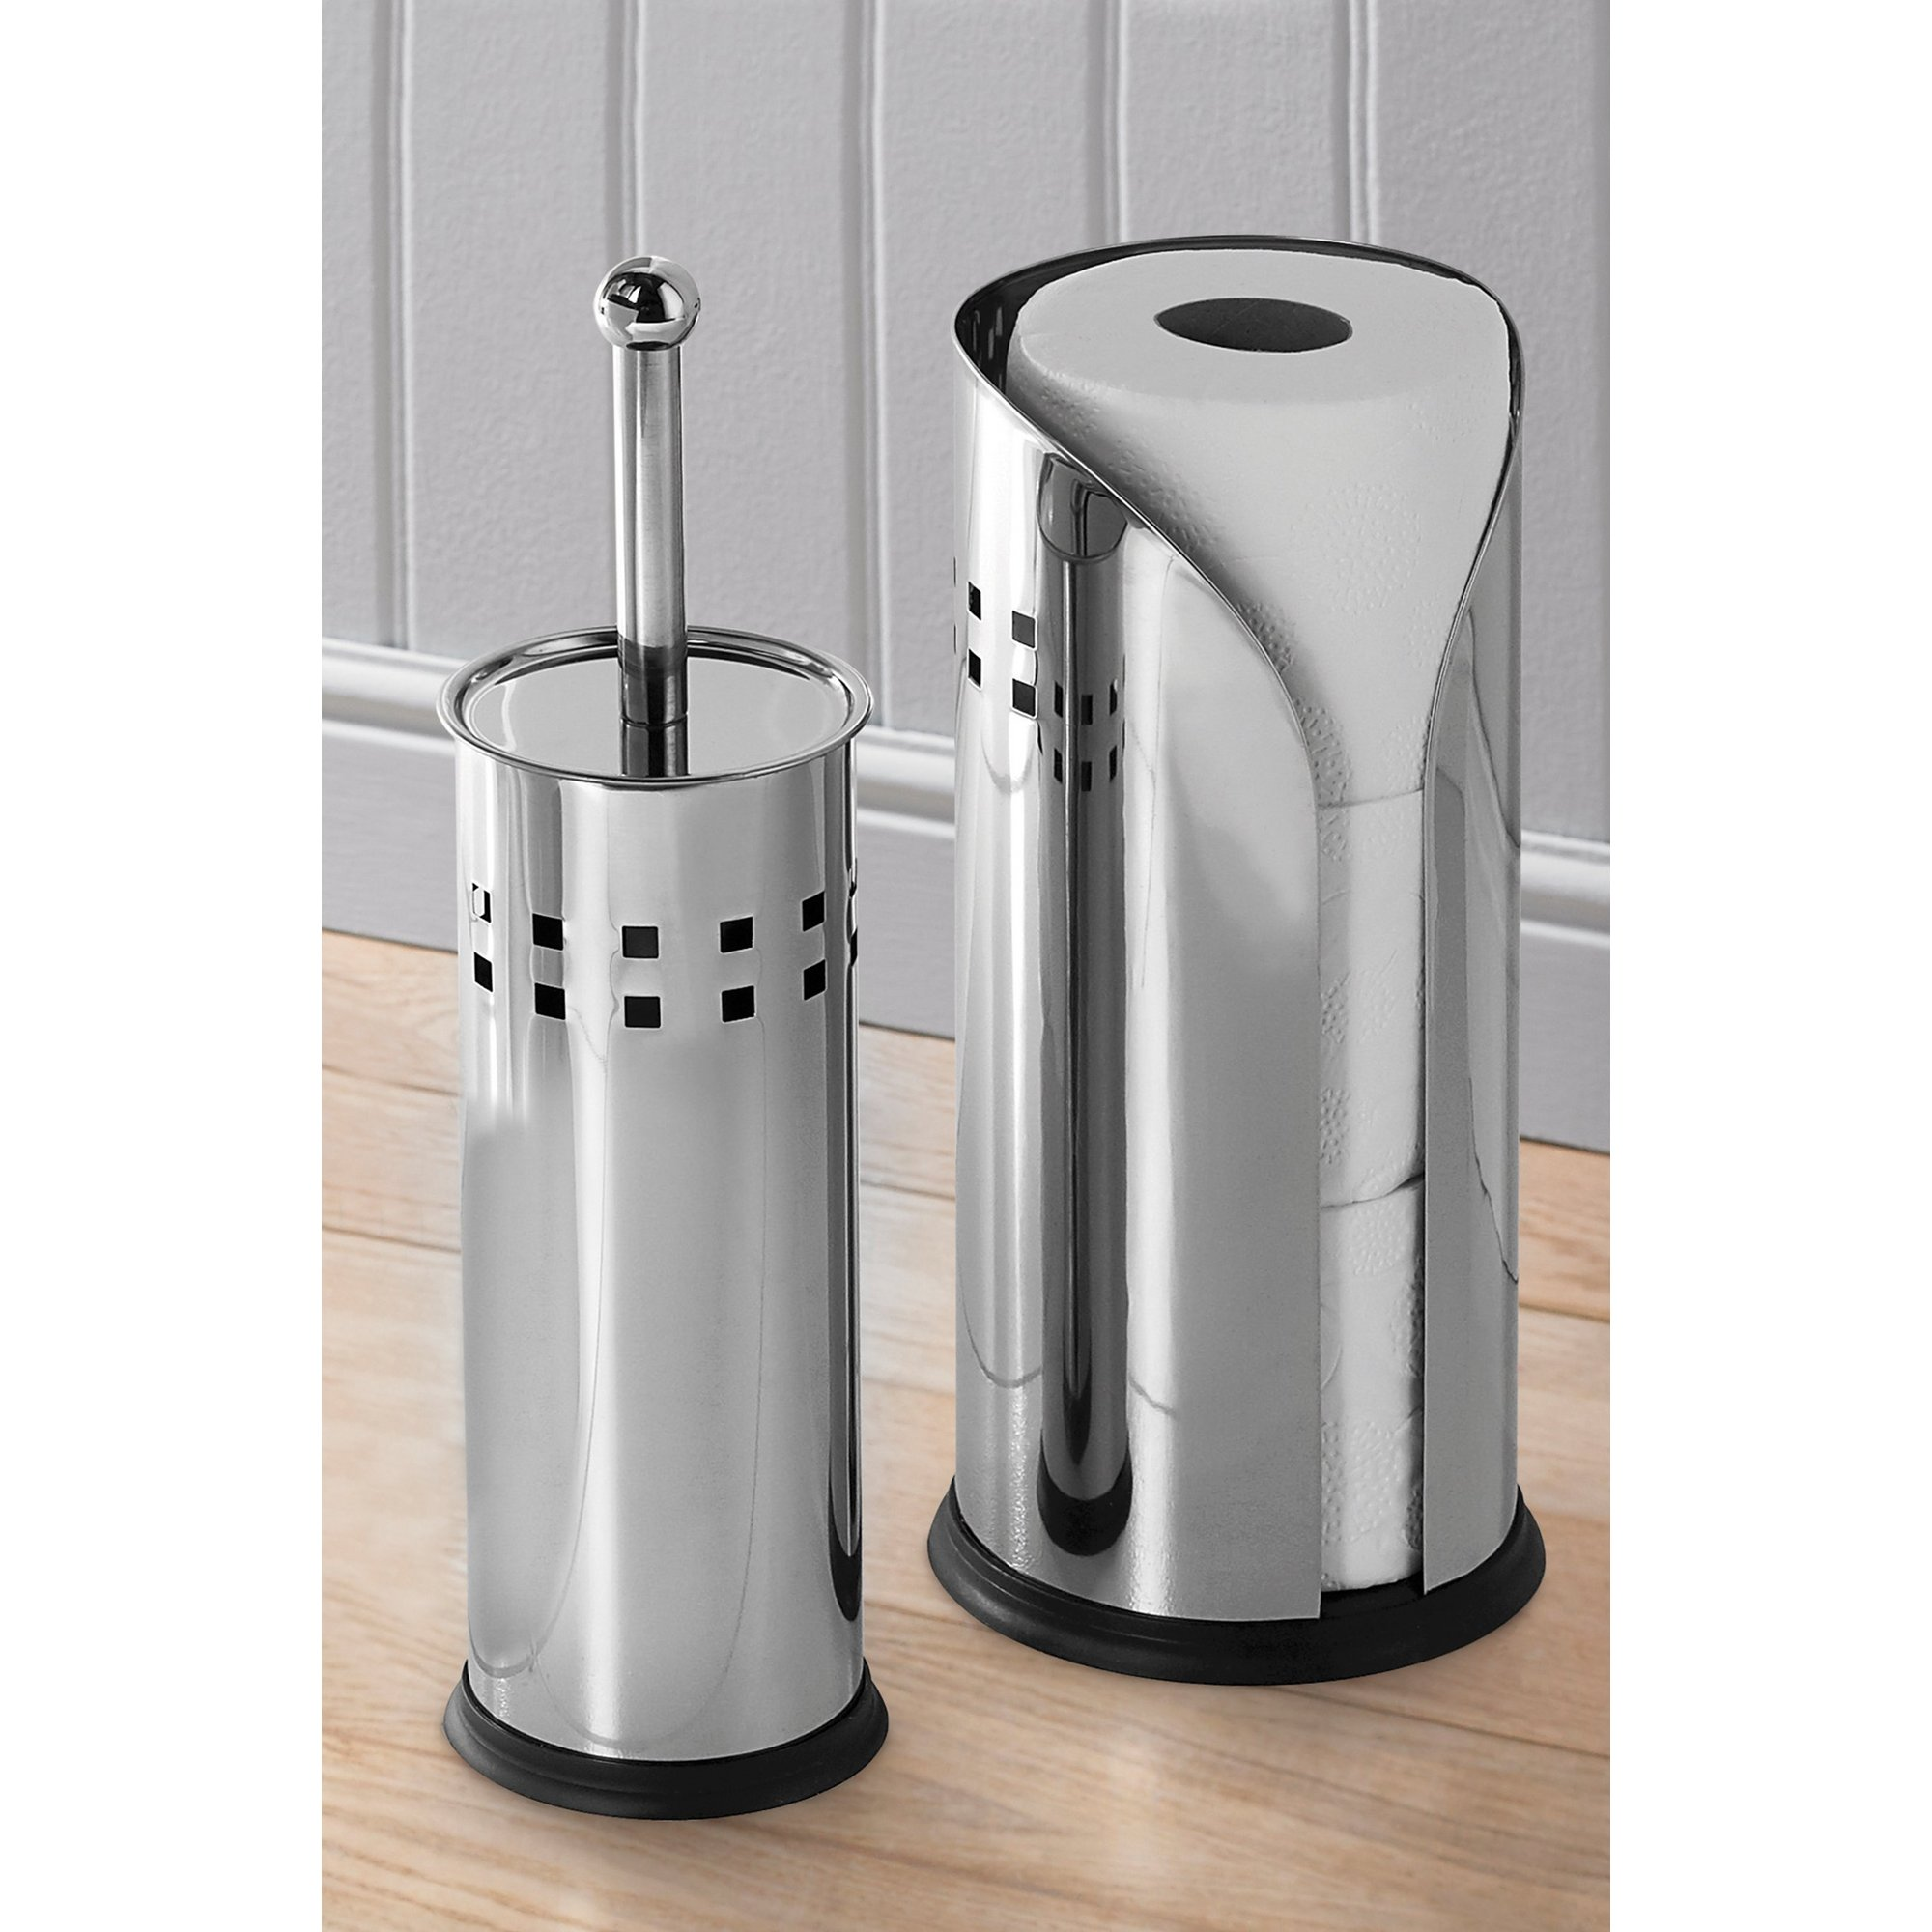 Image of Stainless Steel Toilet Brush and Holder Set